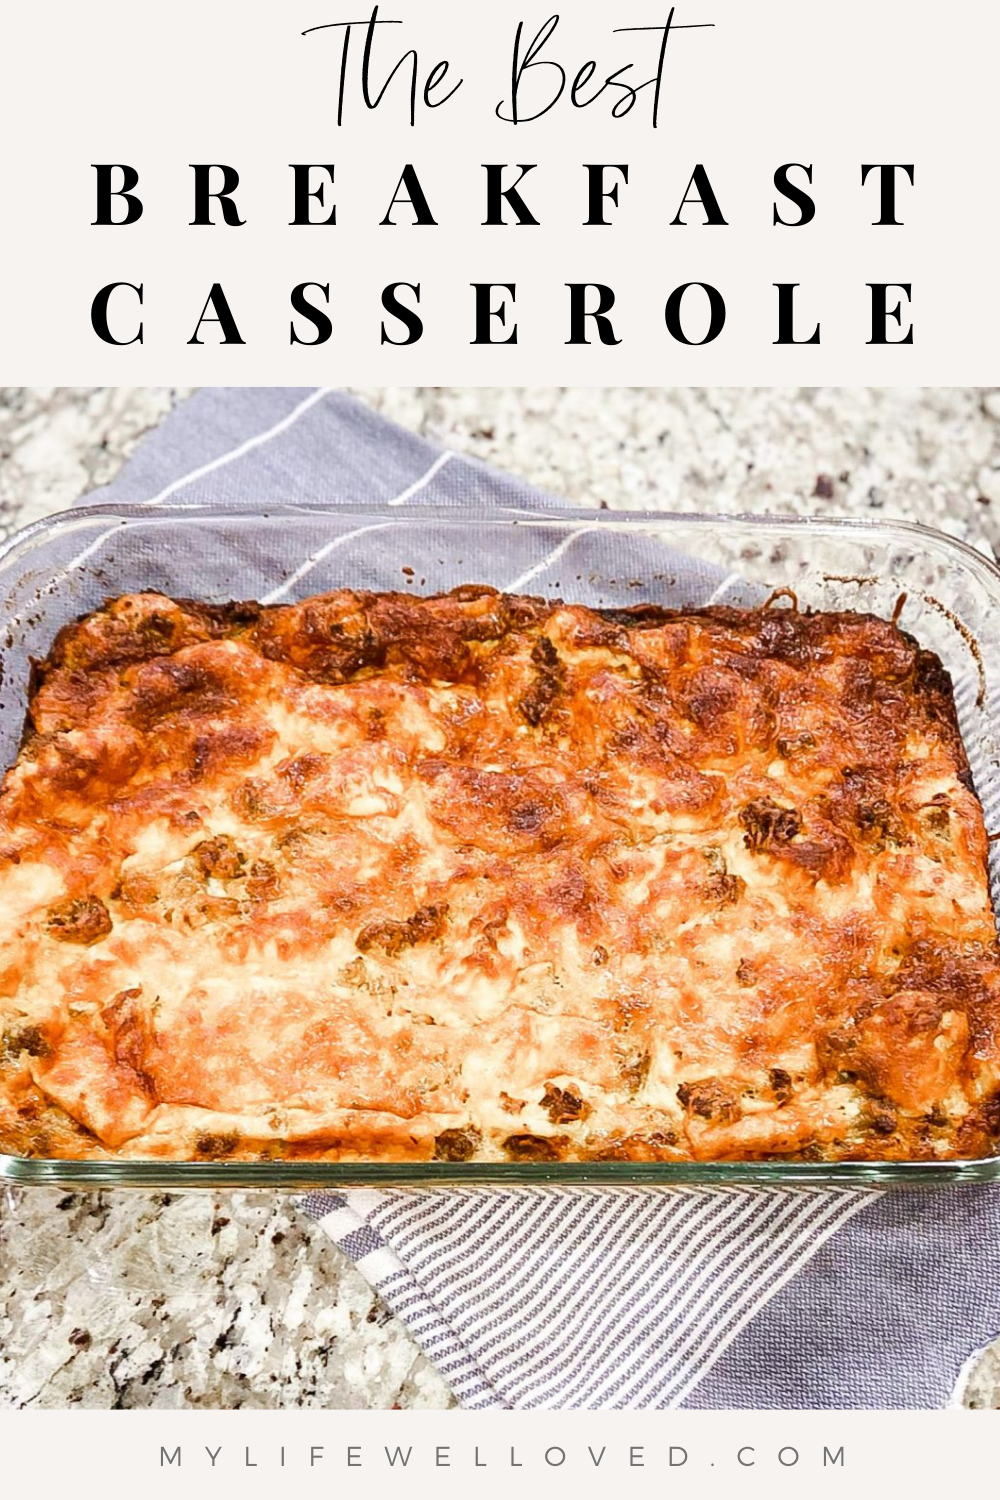 The Best Breakfast Casserole by Alabama Food + Family blogger, Heather Brown // My Life Well Loved